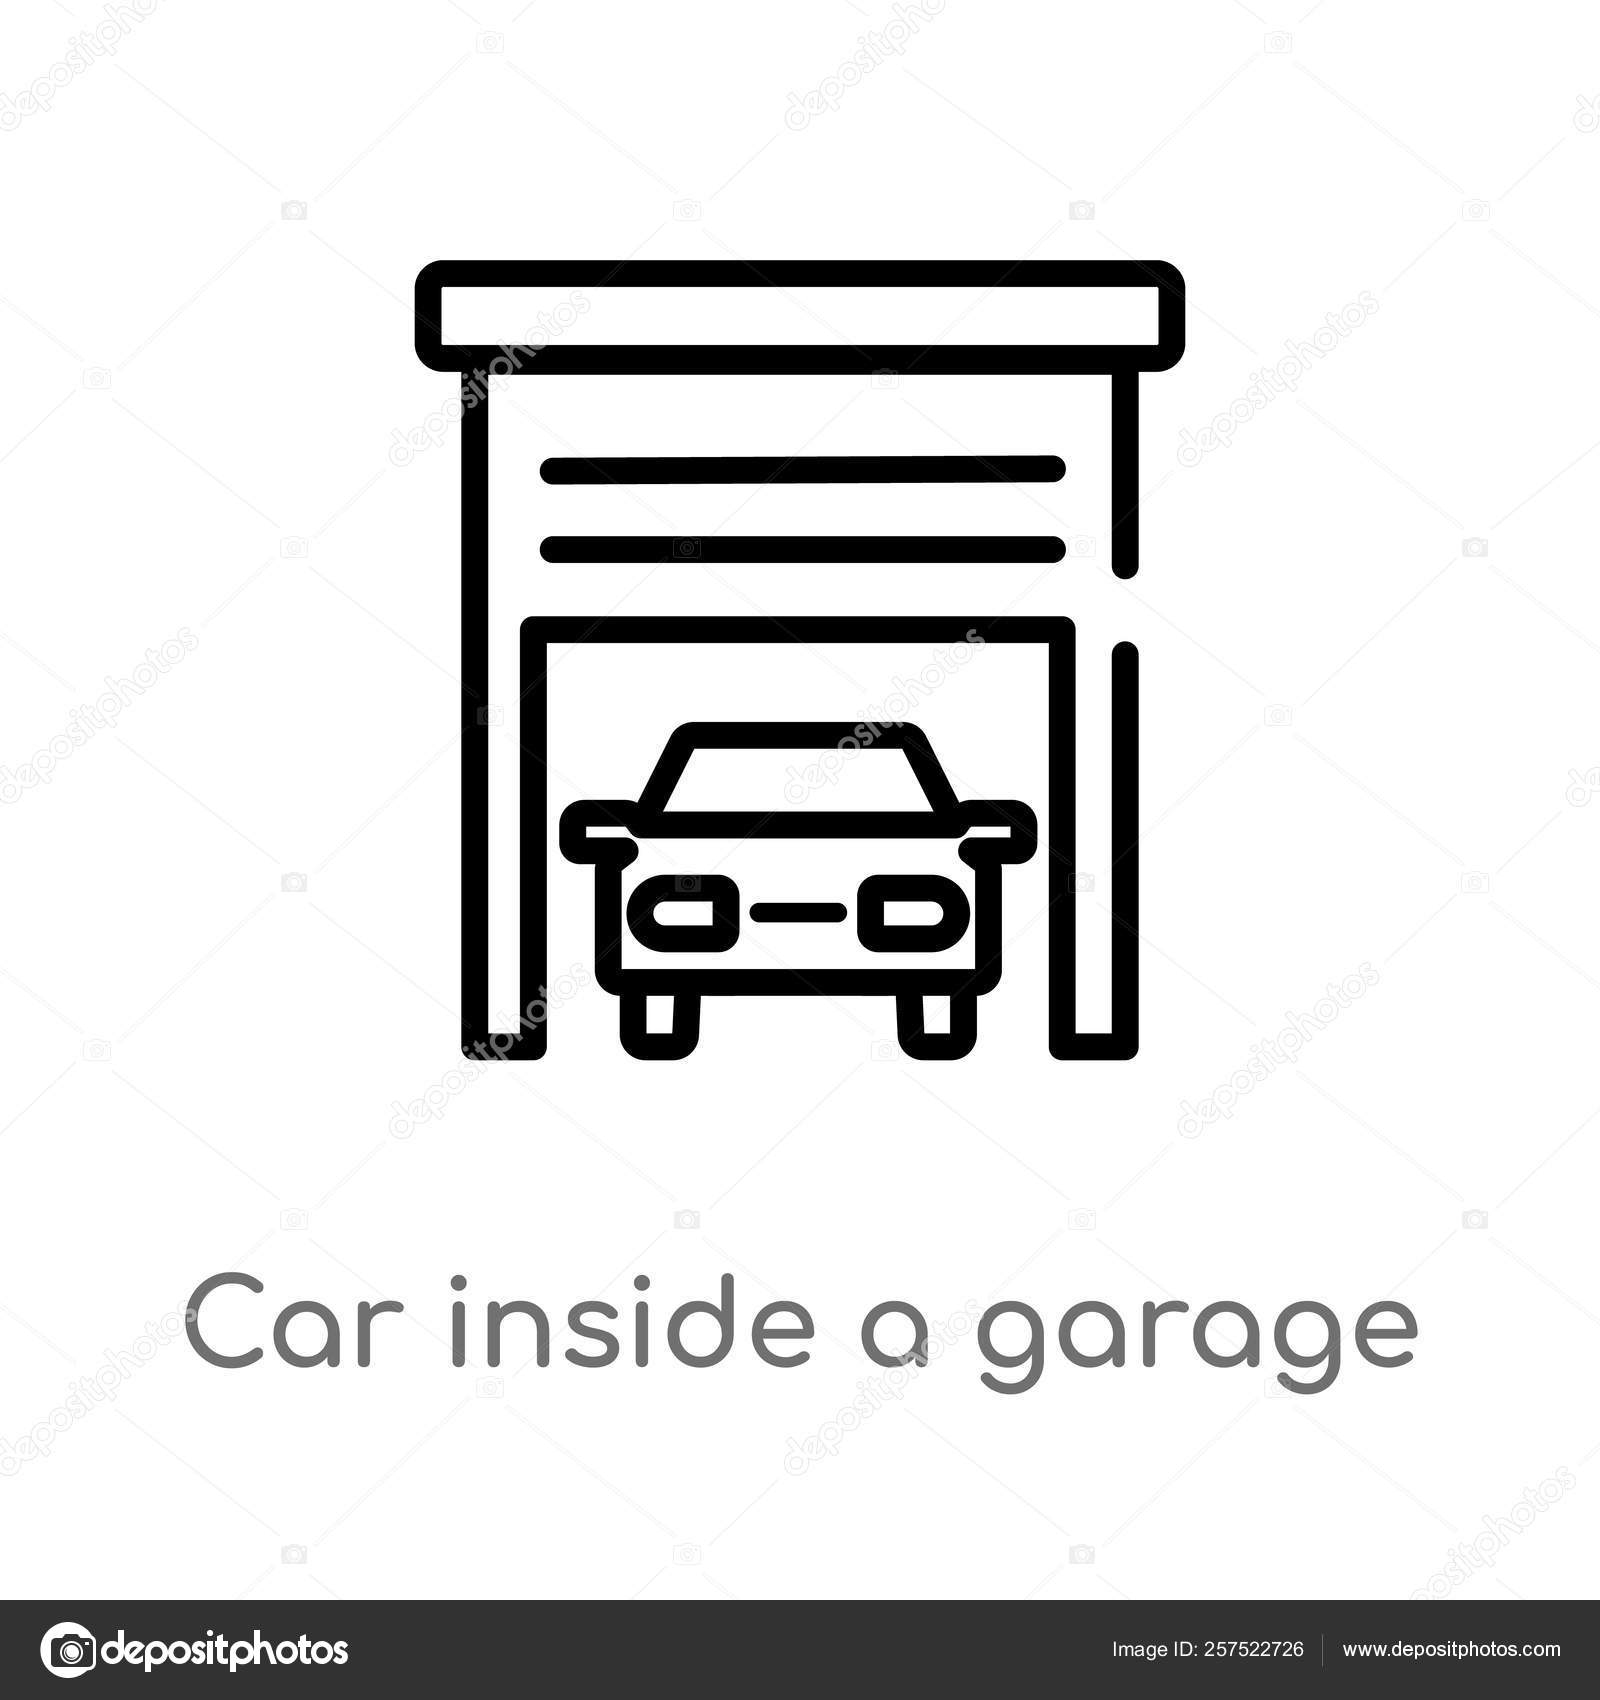 Outline Car Garage Vector Icon Isolated Black Simple Line